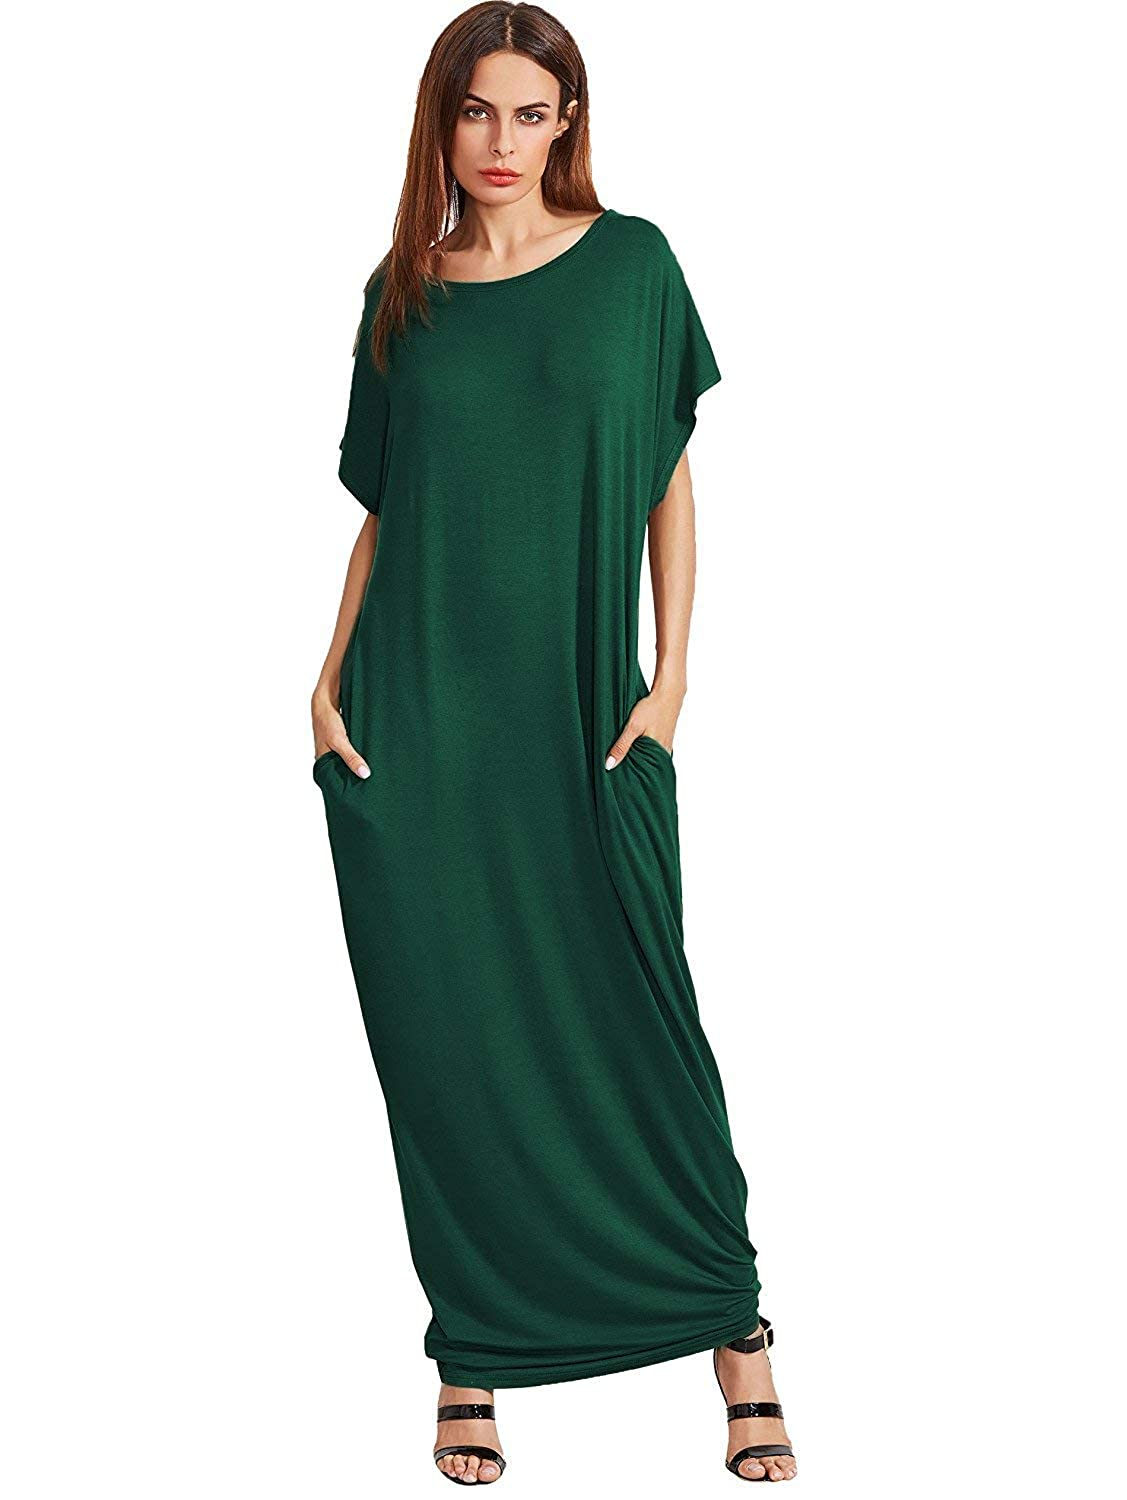 1 Dark Green Verdusa Women's Casual Short Sleeve Loose Pocket Plain Shift Long Maxi Dress